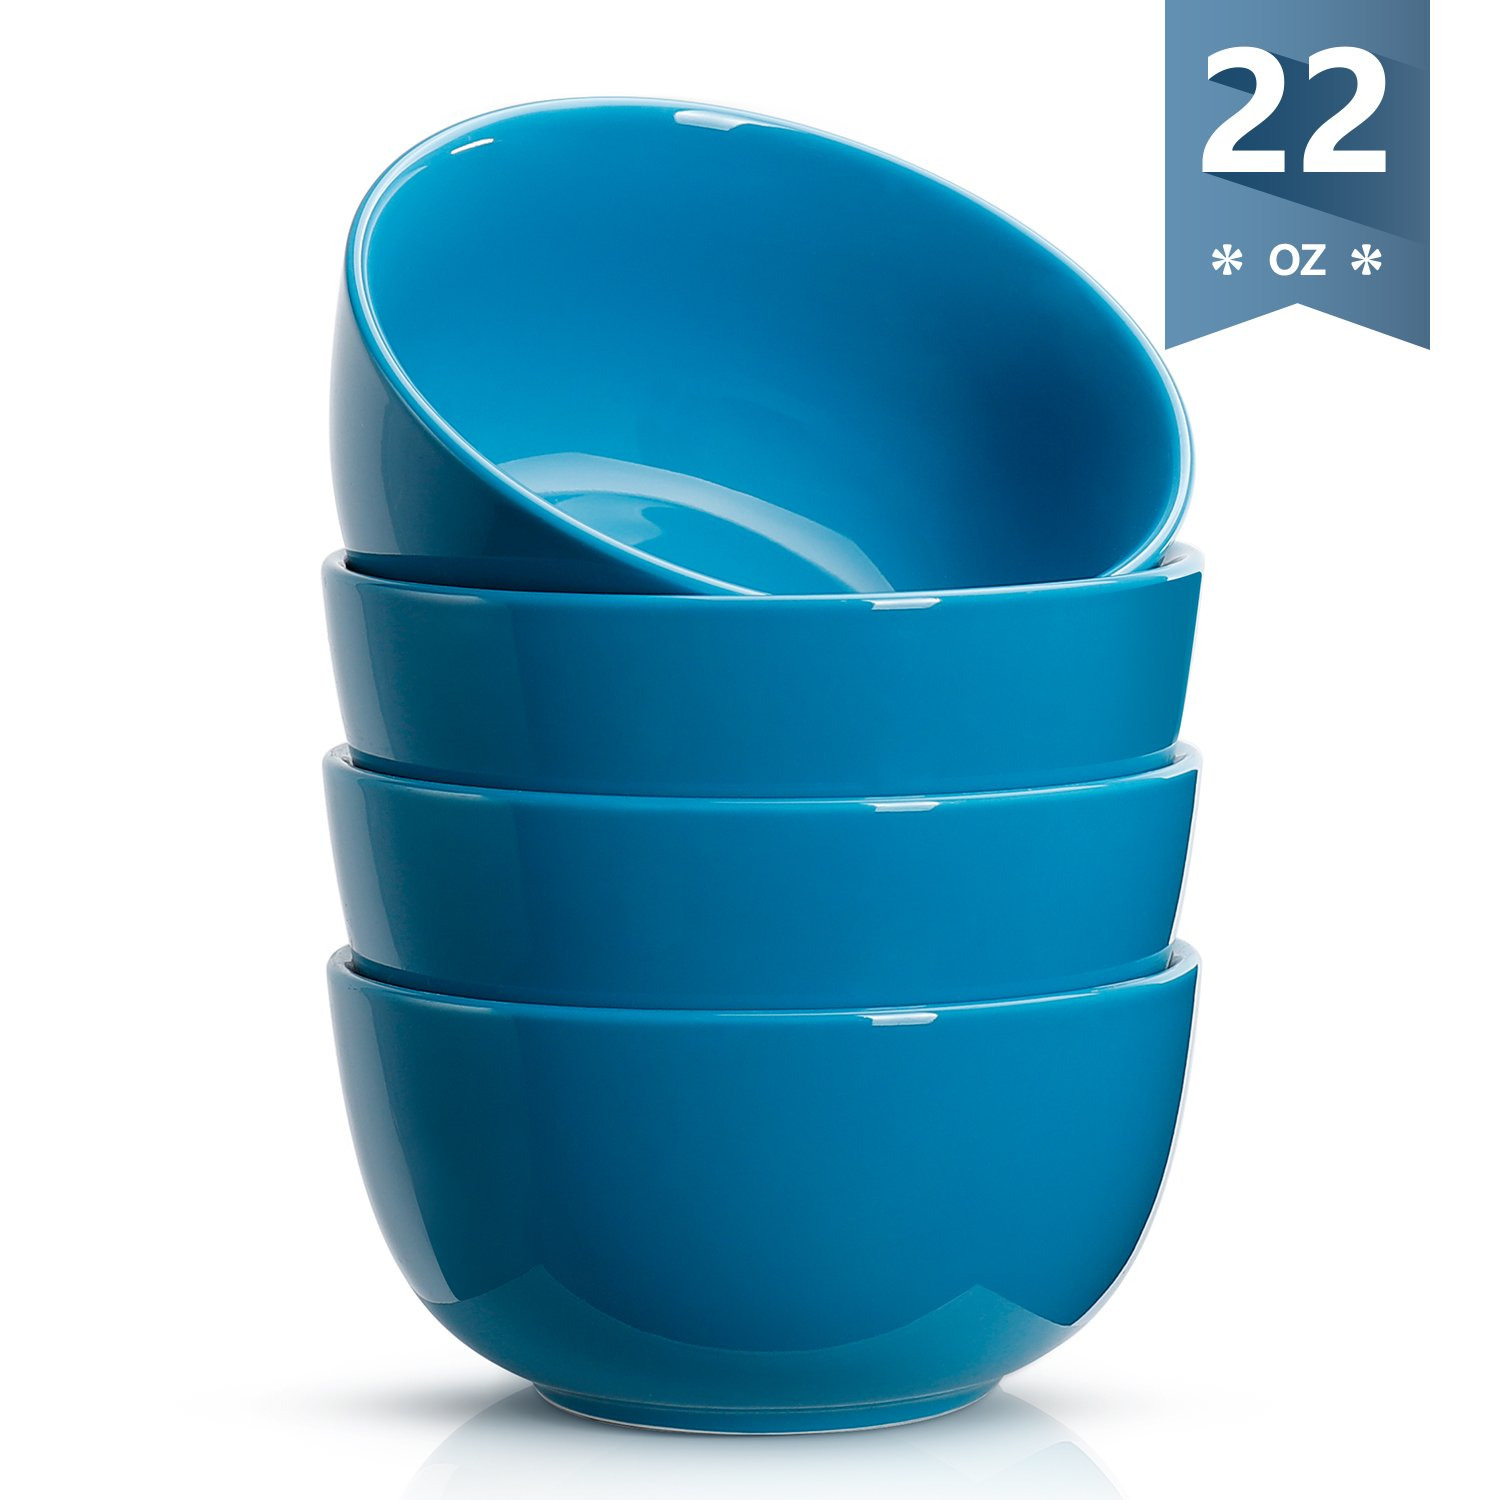 Sweese 1135 Porcelain Bowls - 22 Ounce for Cereal, Soup, Rice, Salad - Set of 4, Steel blue